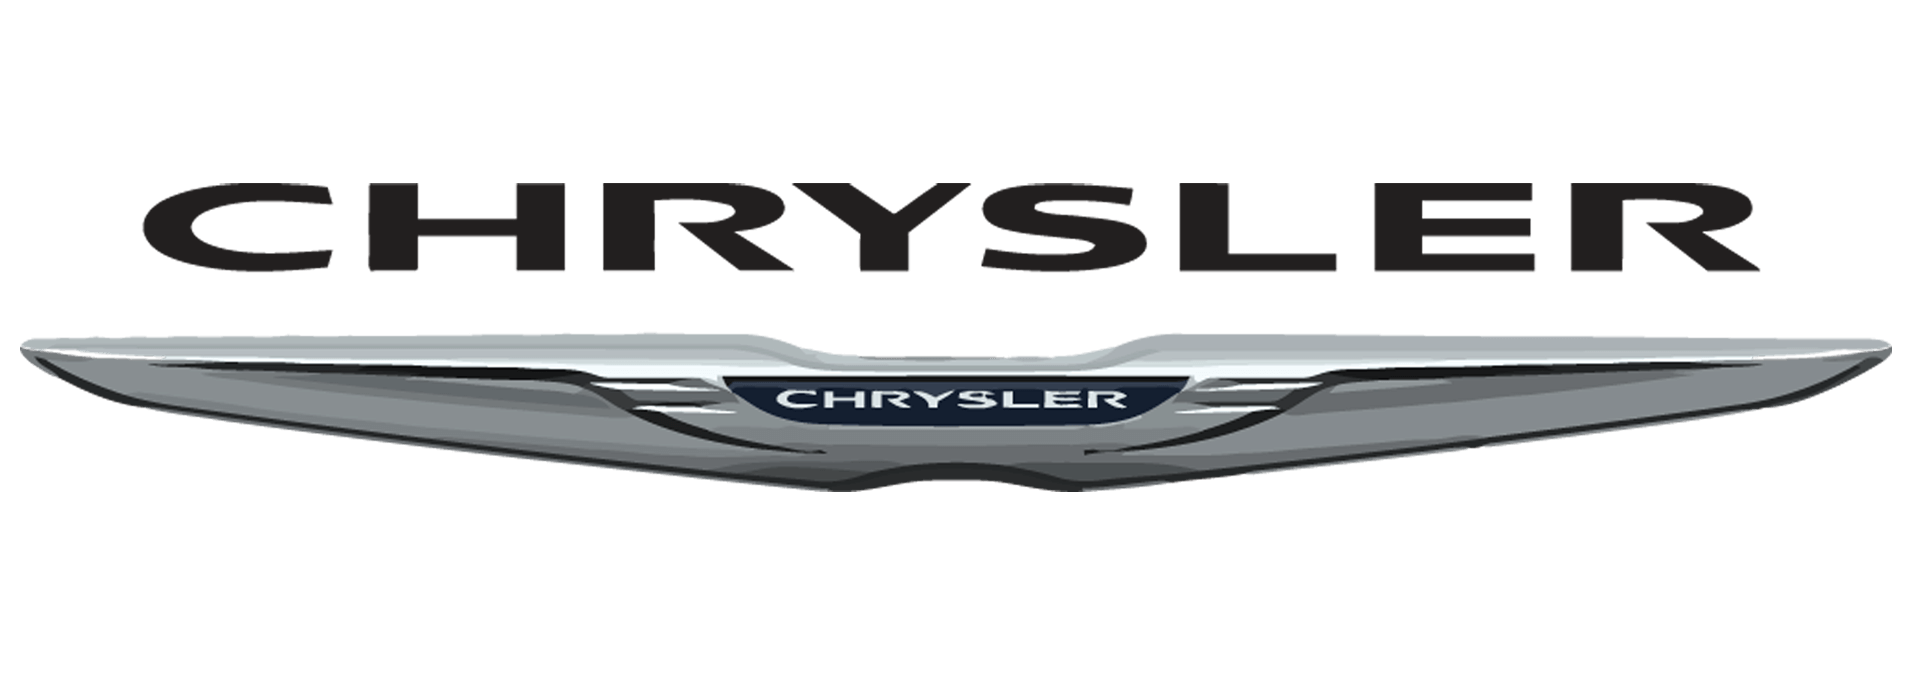 Chrysler CarRight Auto Car Right Buy Your Car Right Moon Township PA New Vehicles Used Vehicles